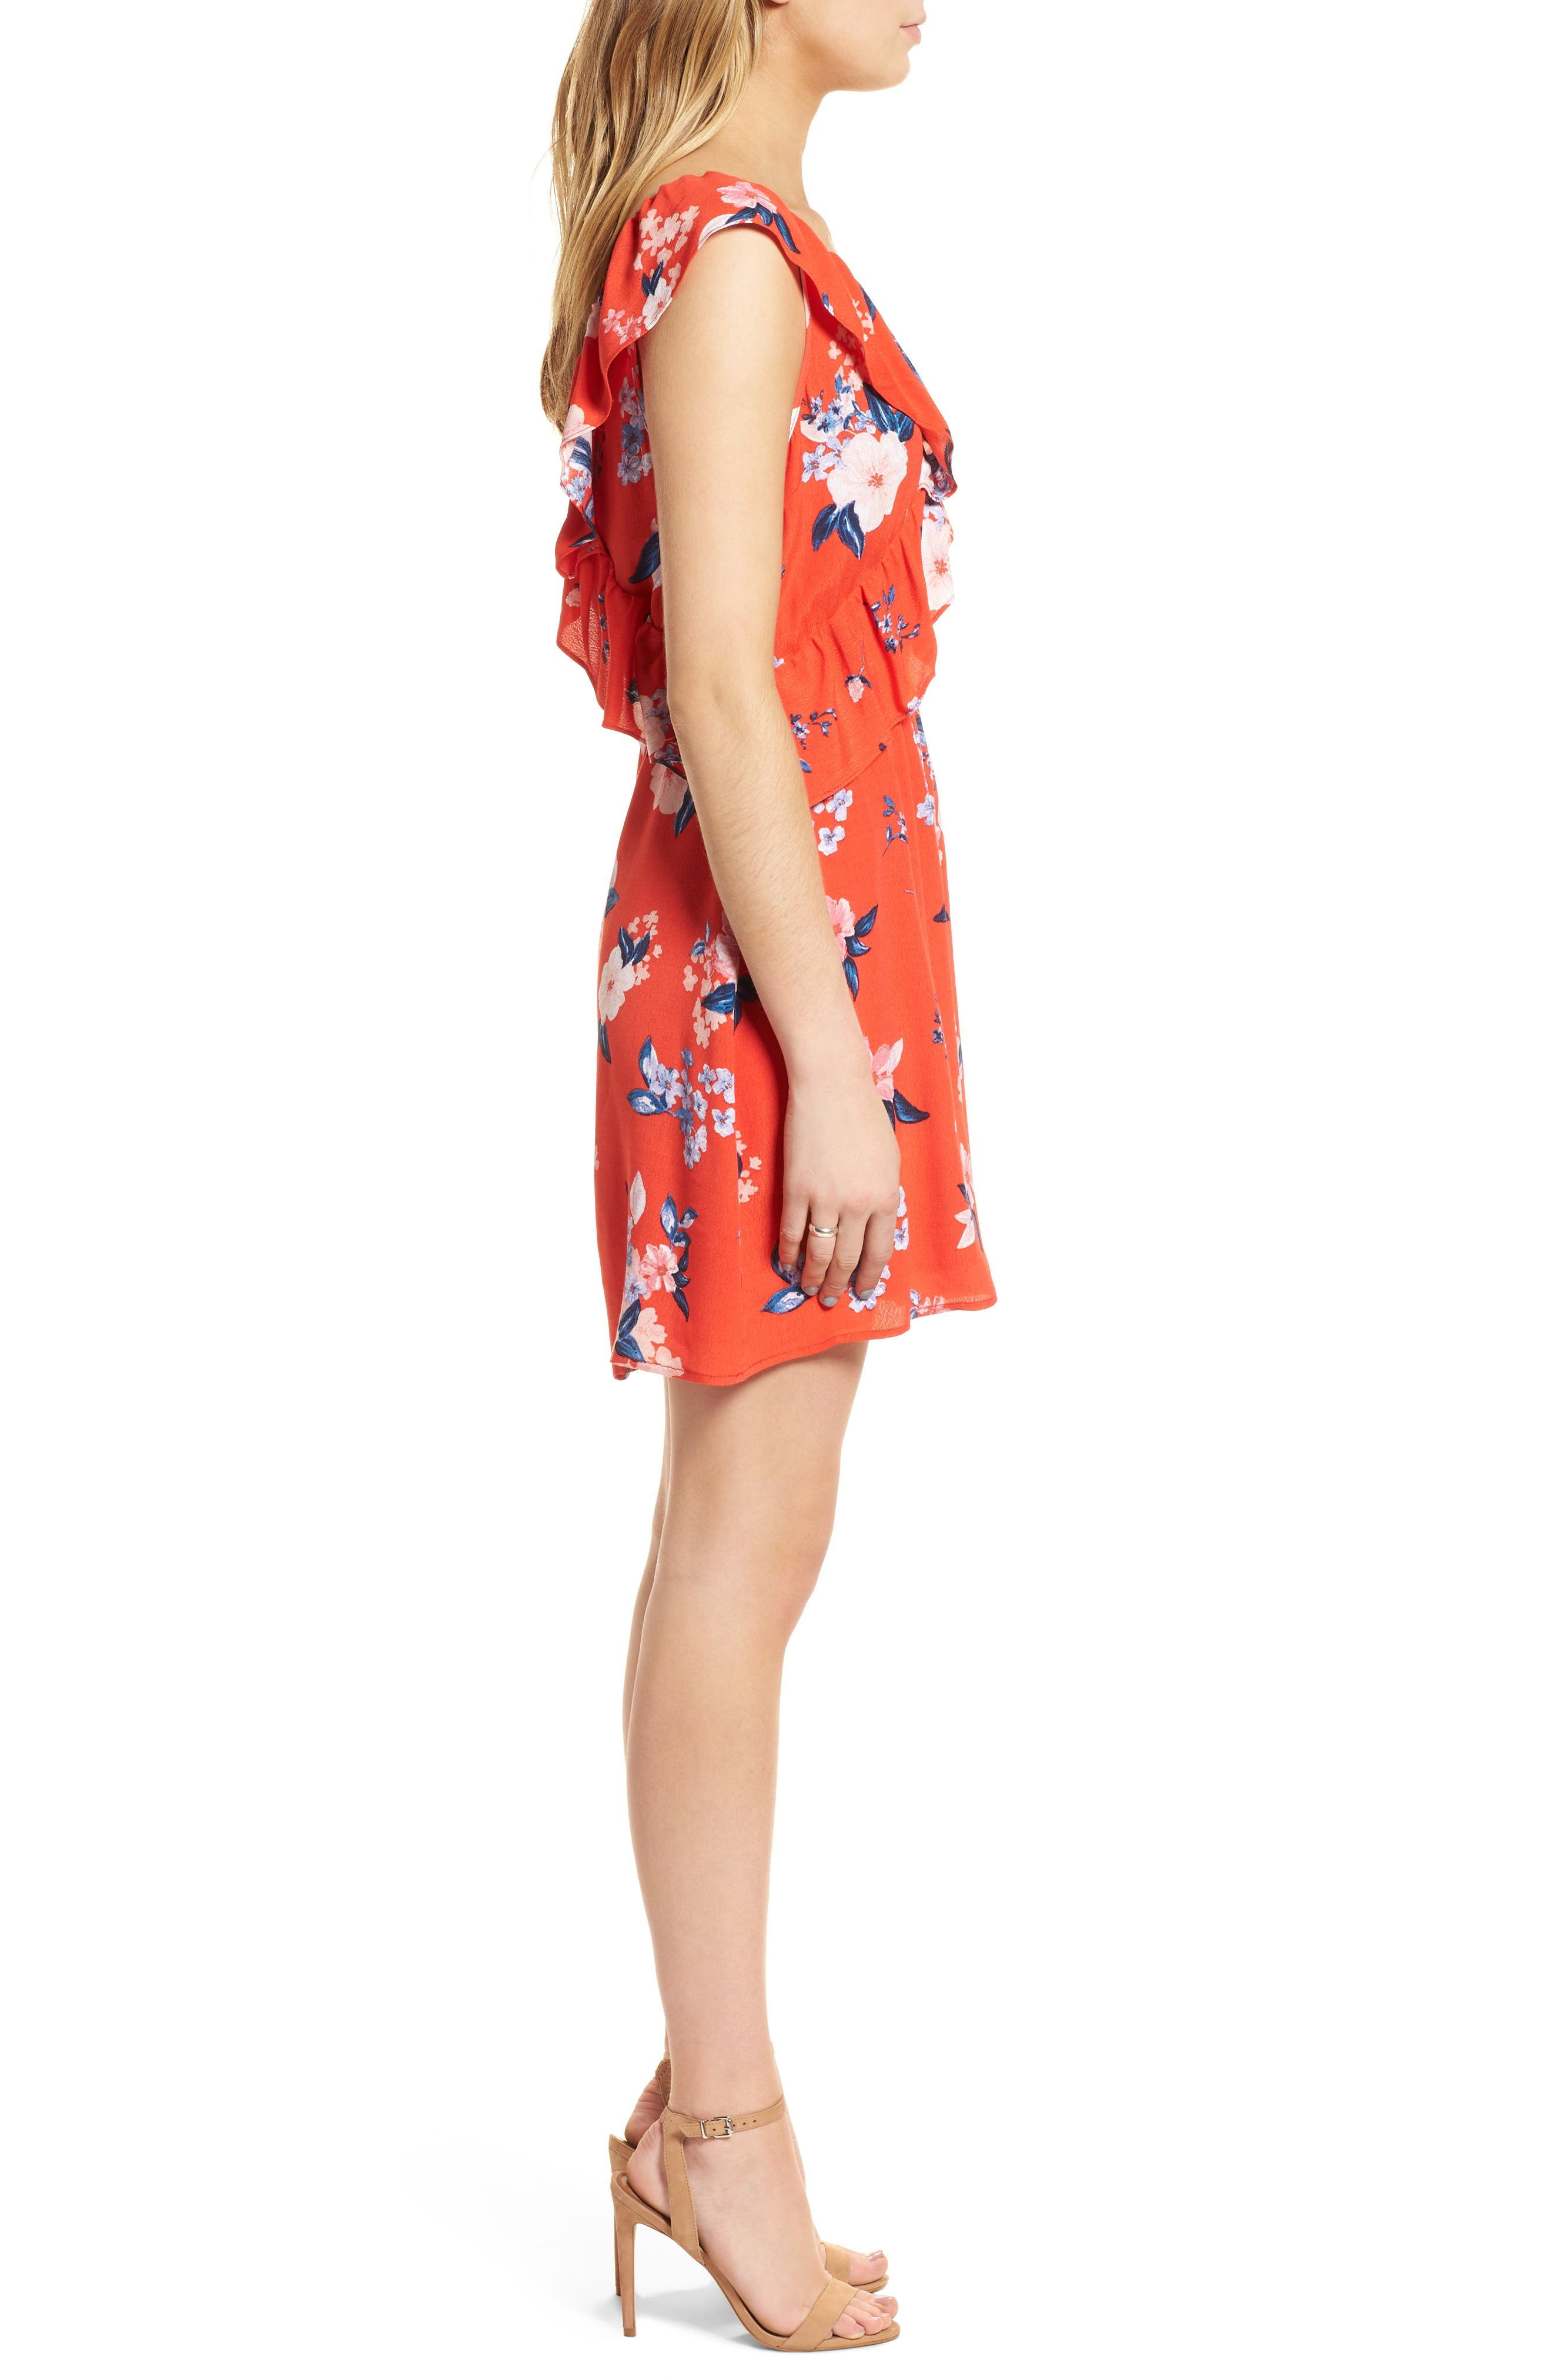 Cordetta Floral Asymmetrical Ruffle Dress,                             Alternate thumbnail 3, color,                             Poppy Red